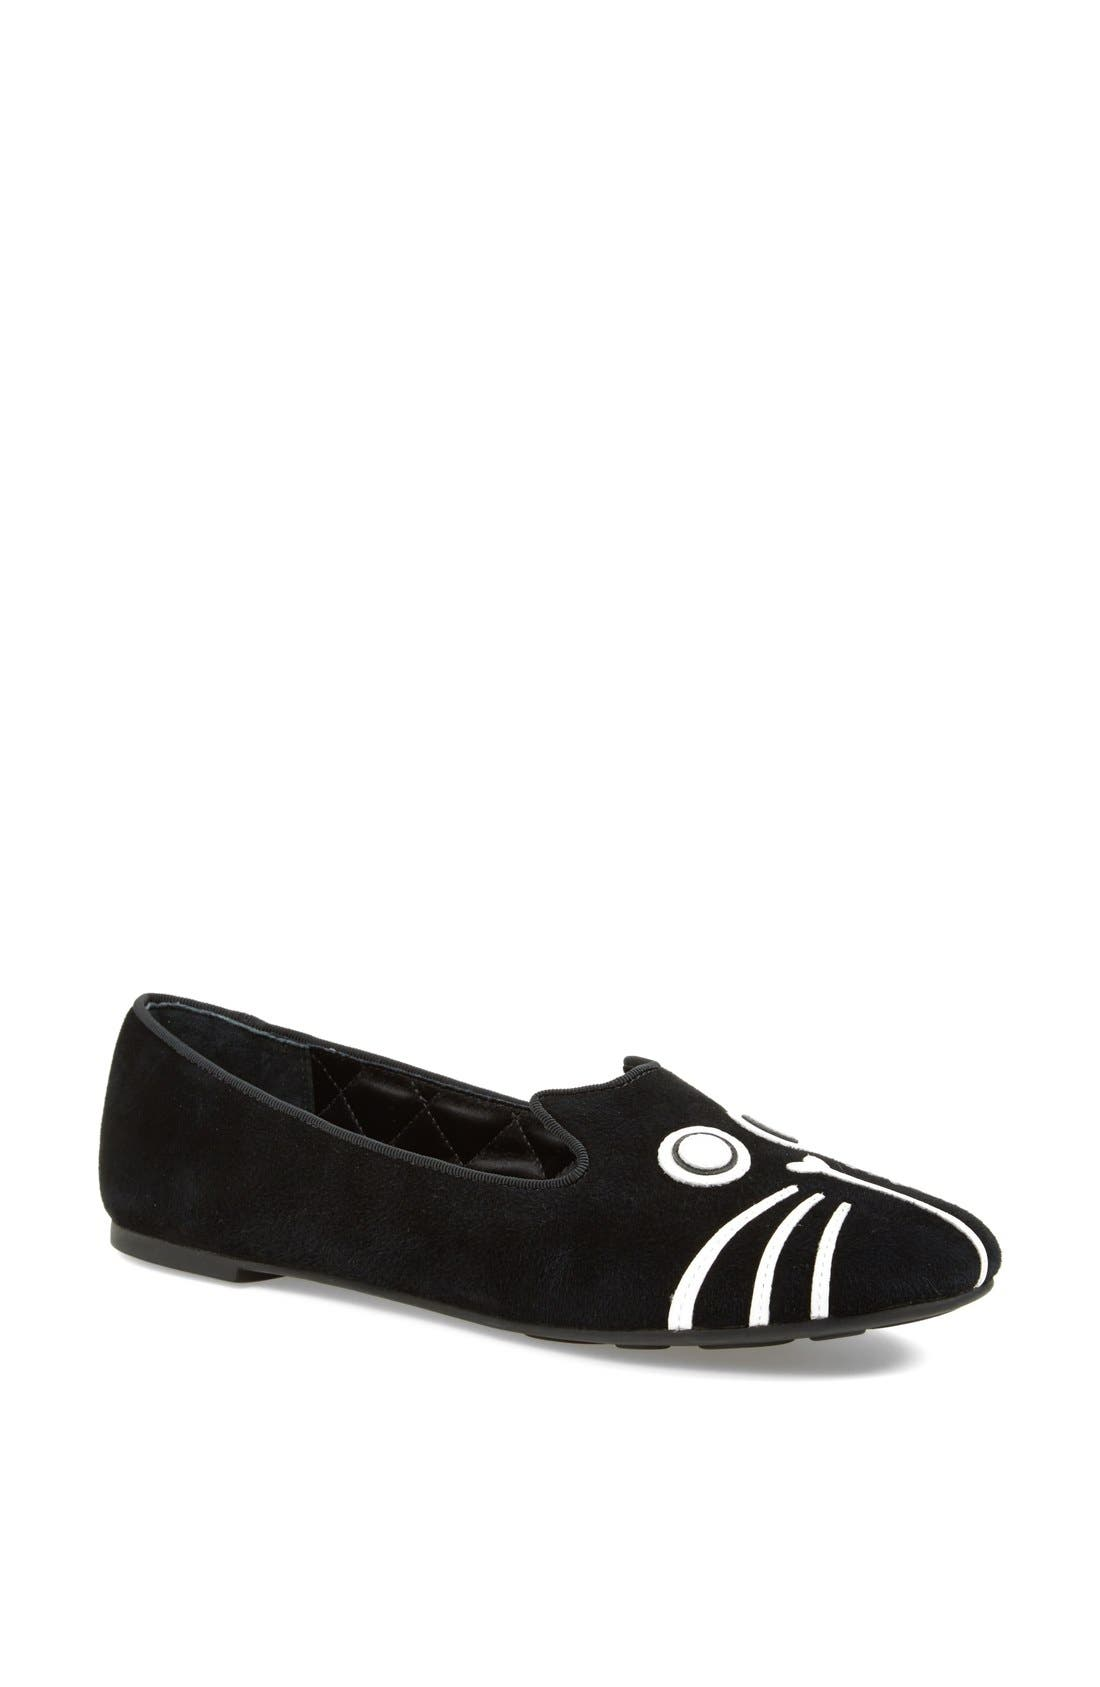 Alternate Image 1 Selected - MARC BY MARC JACOBS 'Rue' Suede Smoking Flat